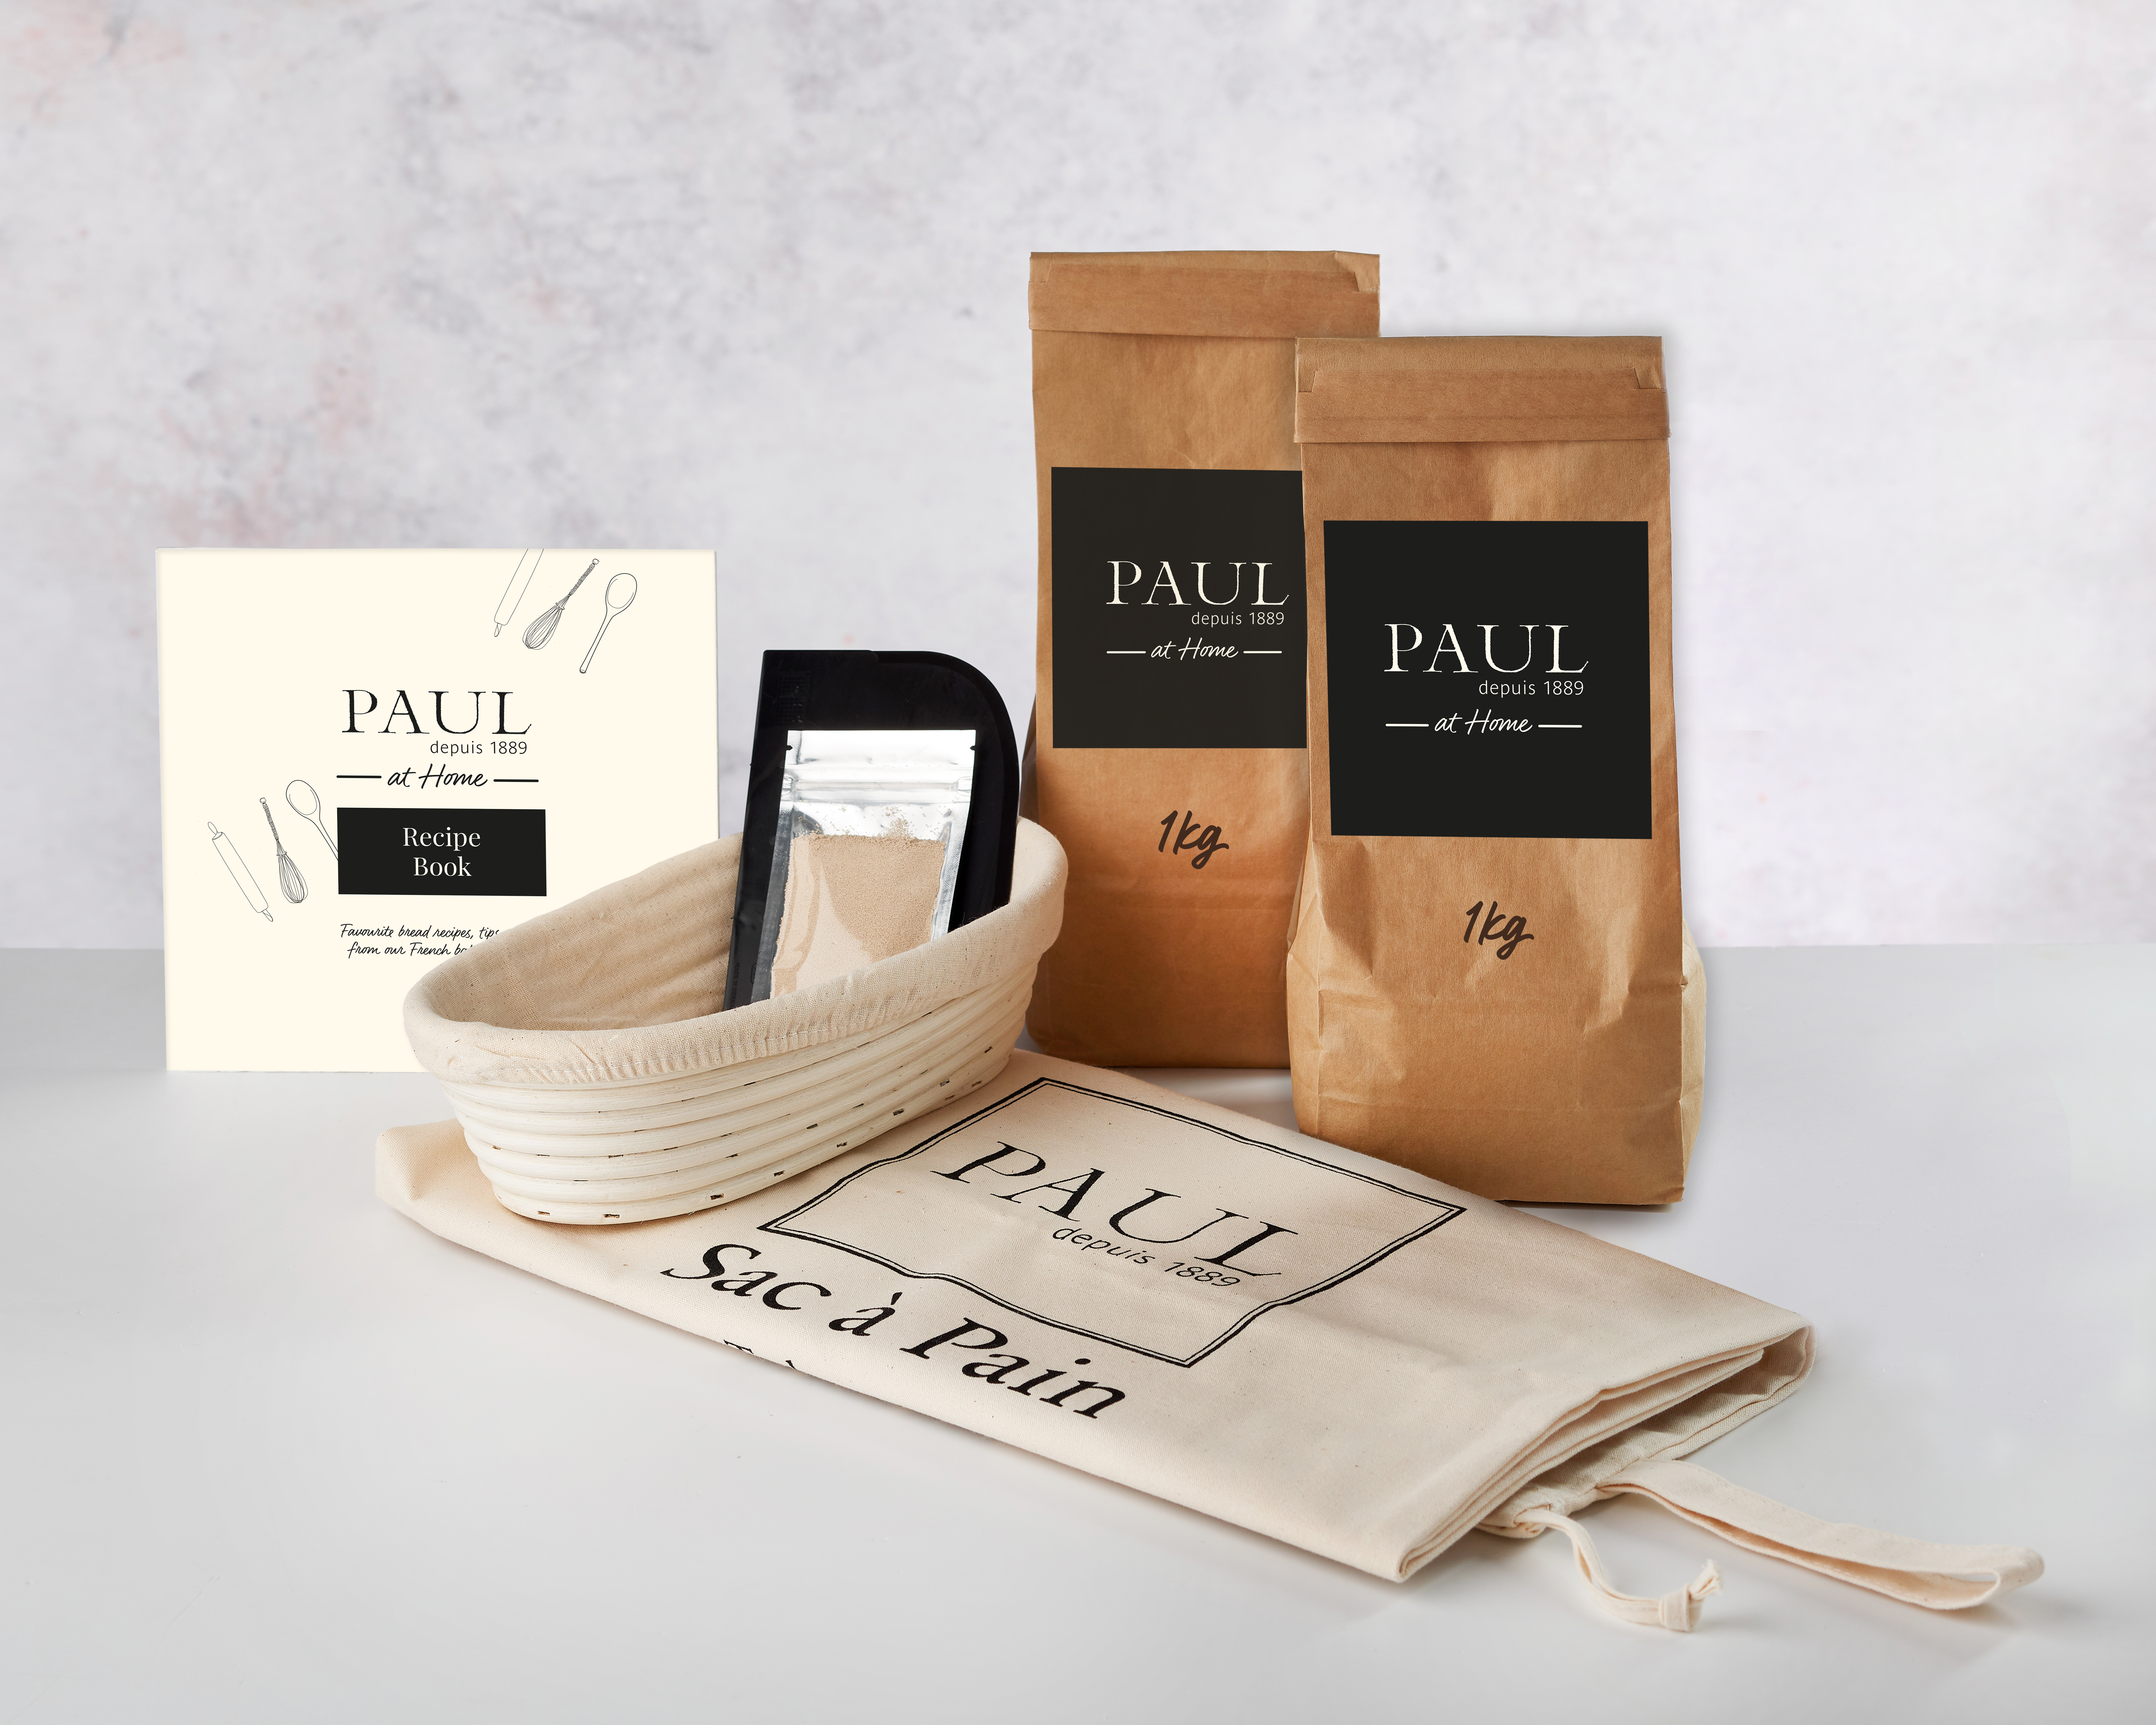 PAUL Home Bread Maker Kit with 2kg Flour - 2 types